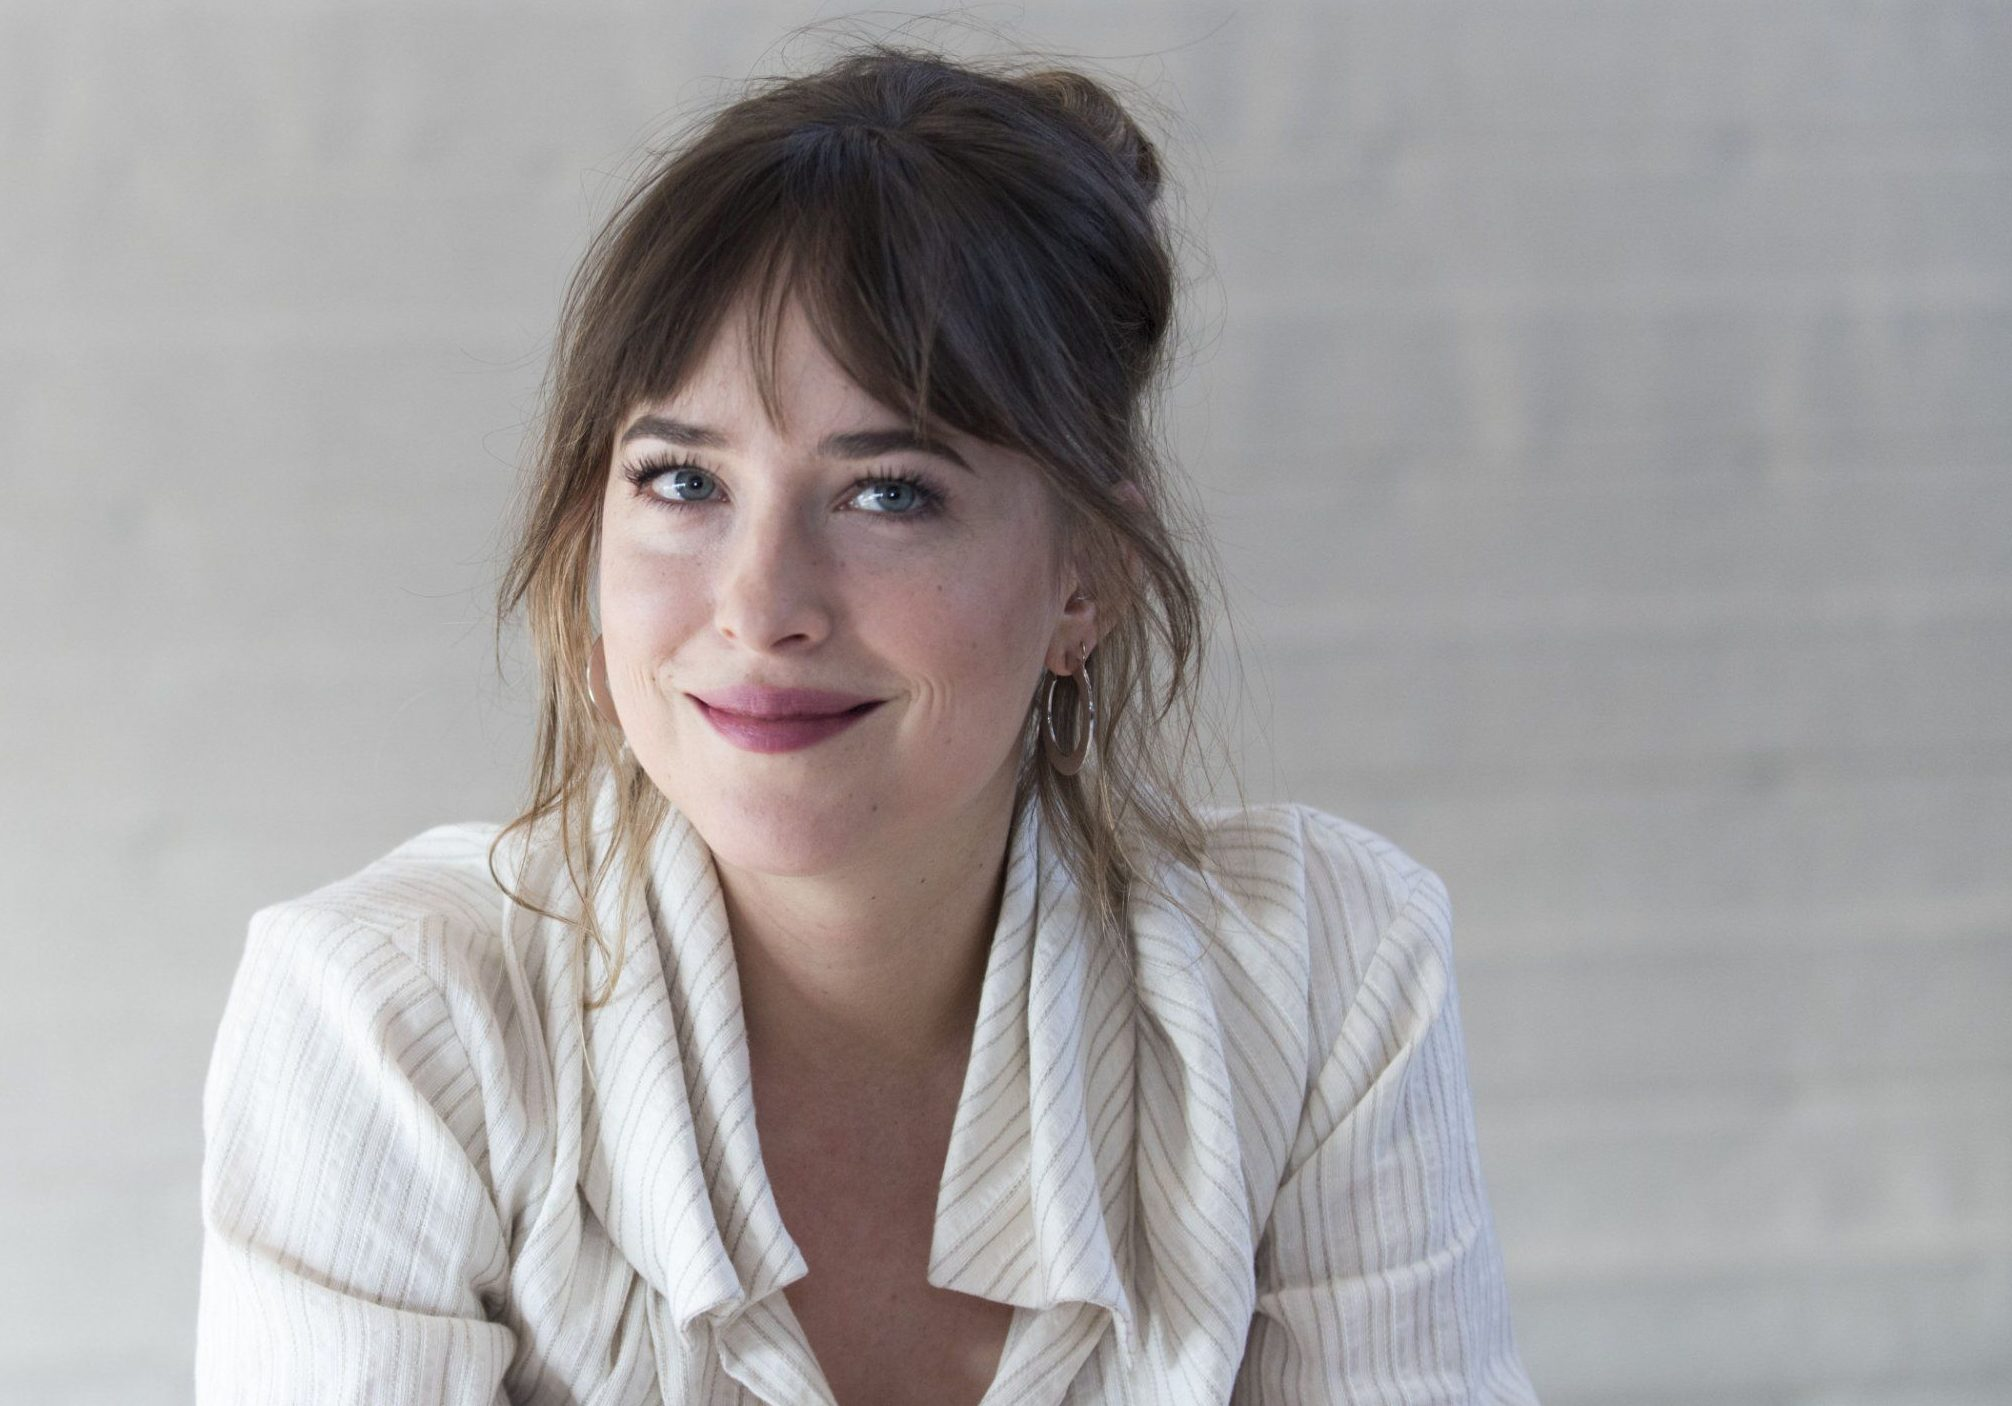 Dakota Johnson admits she needed therapy after starring in Fifty Shades of Grey